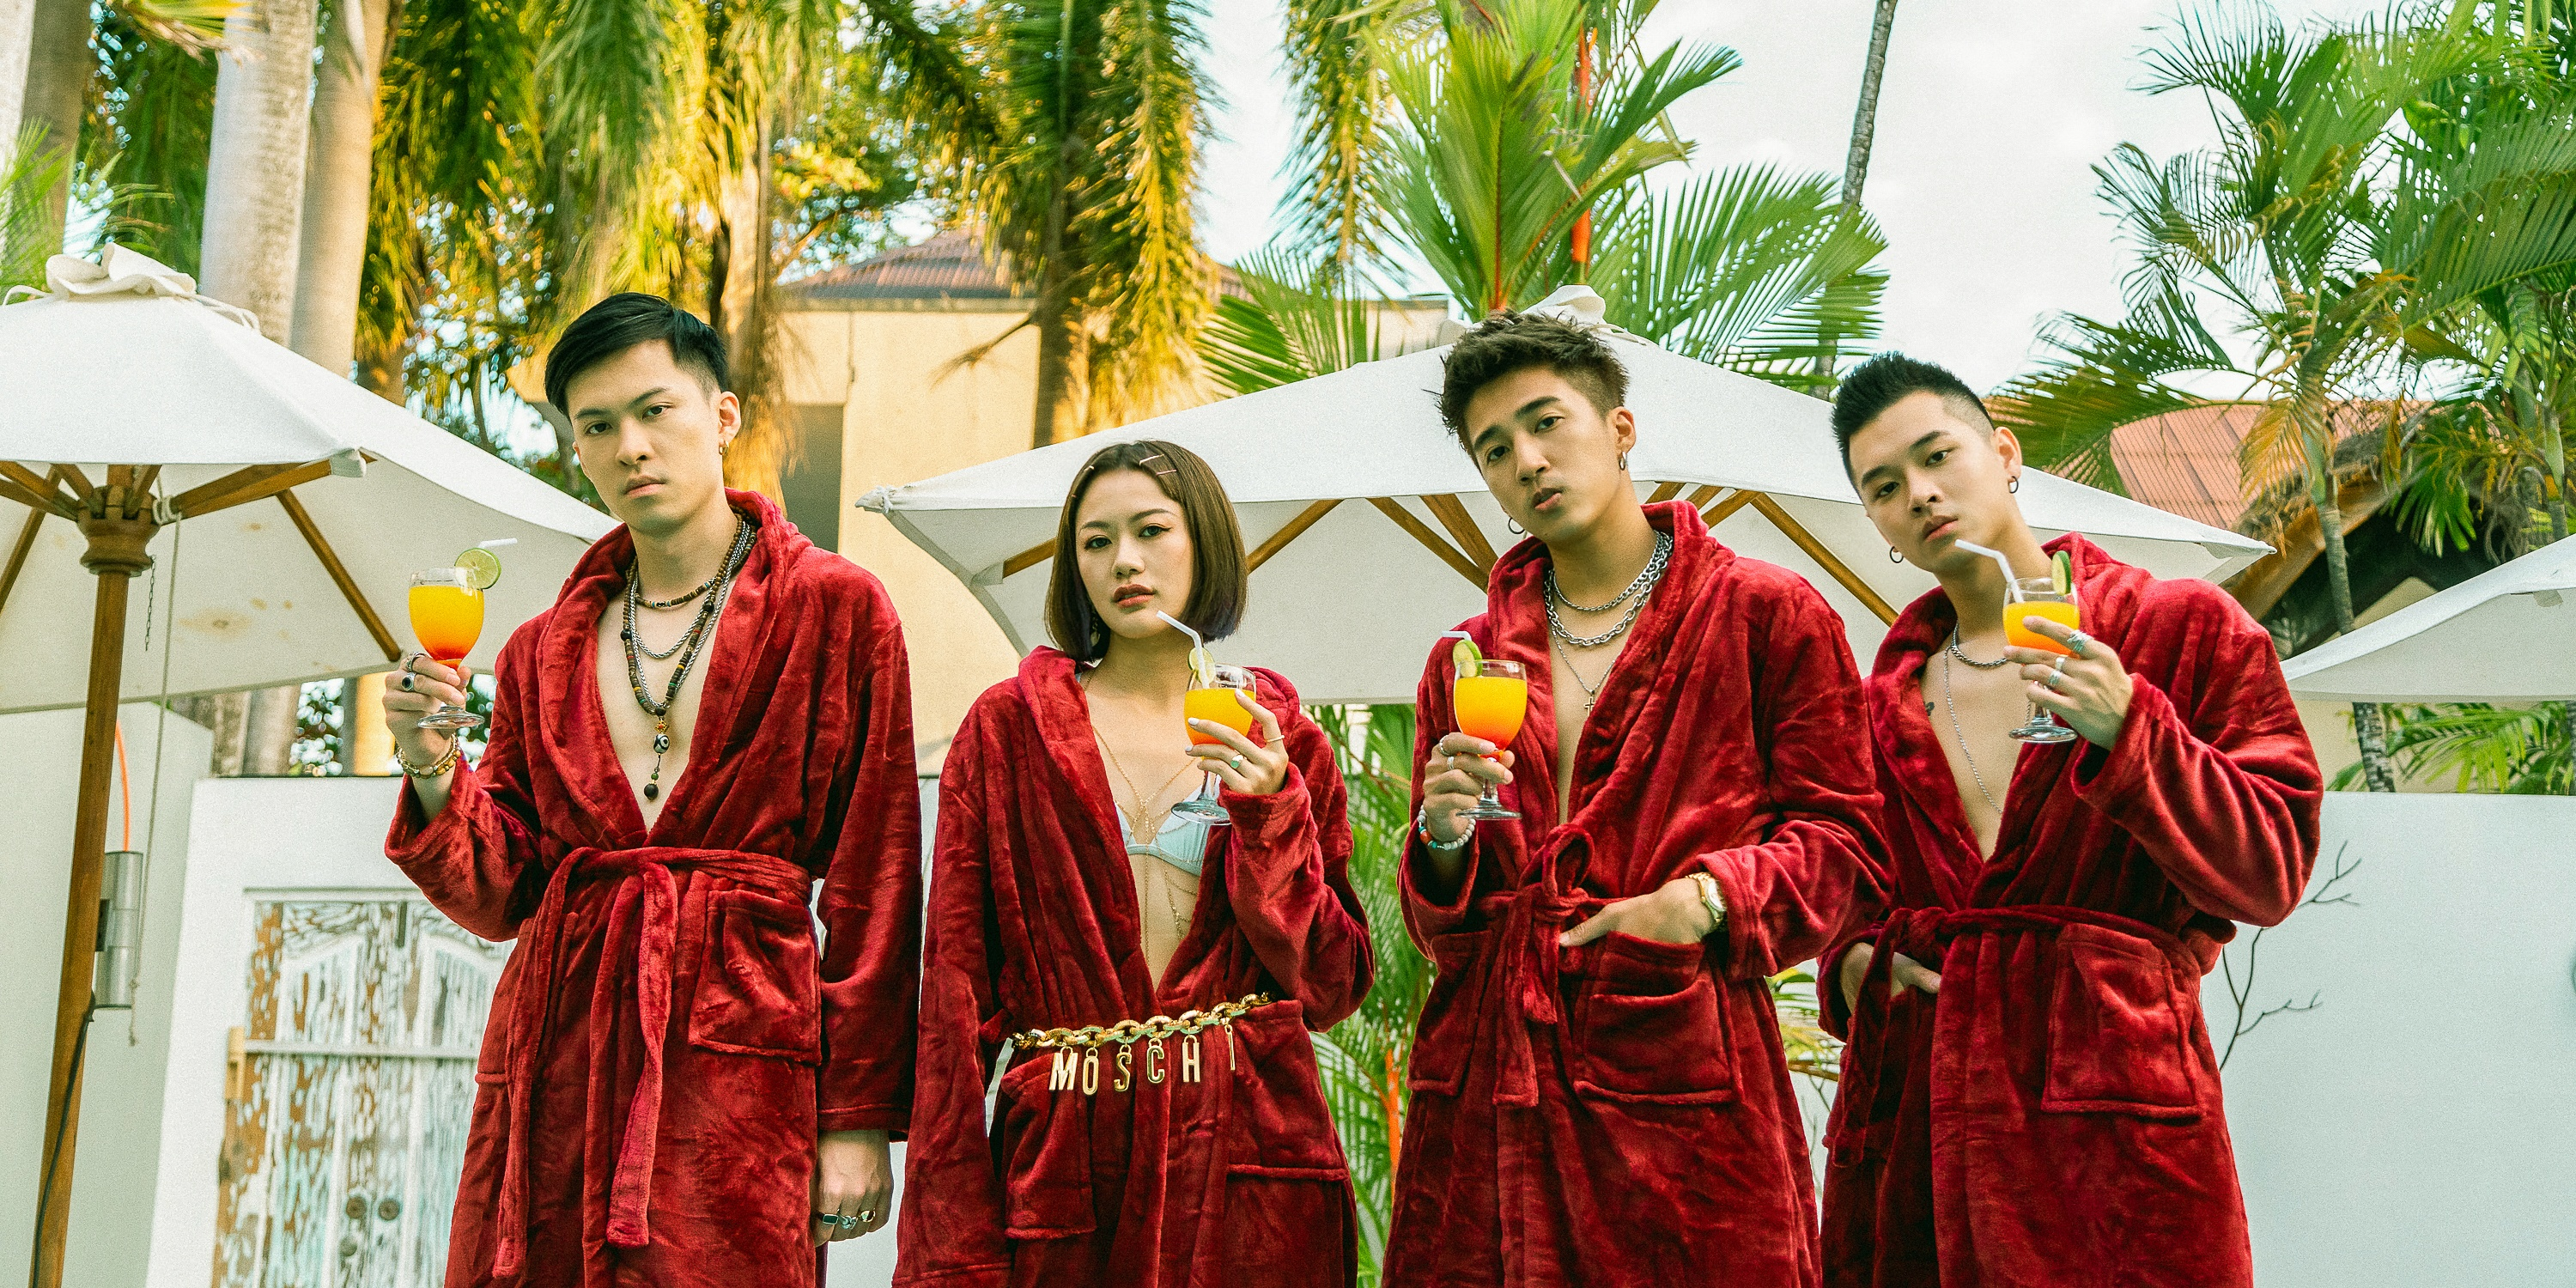 More Than Just A One-Time Collab - An Interview With Ching G Squad